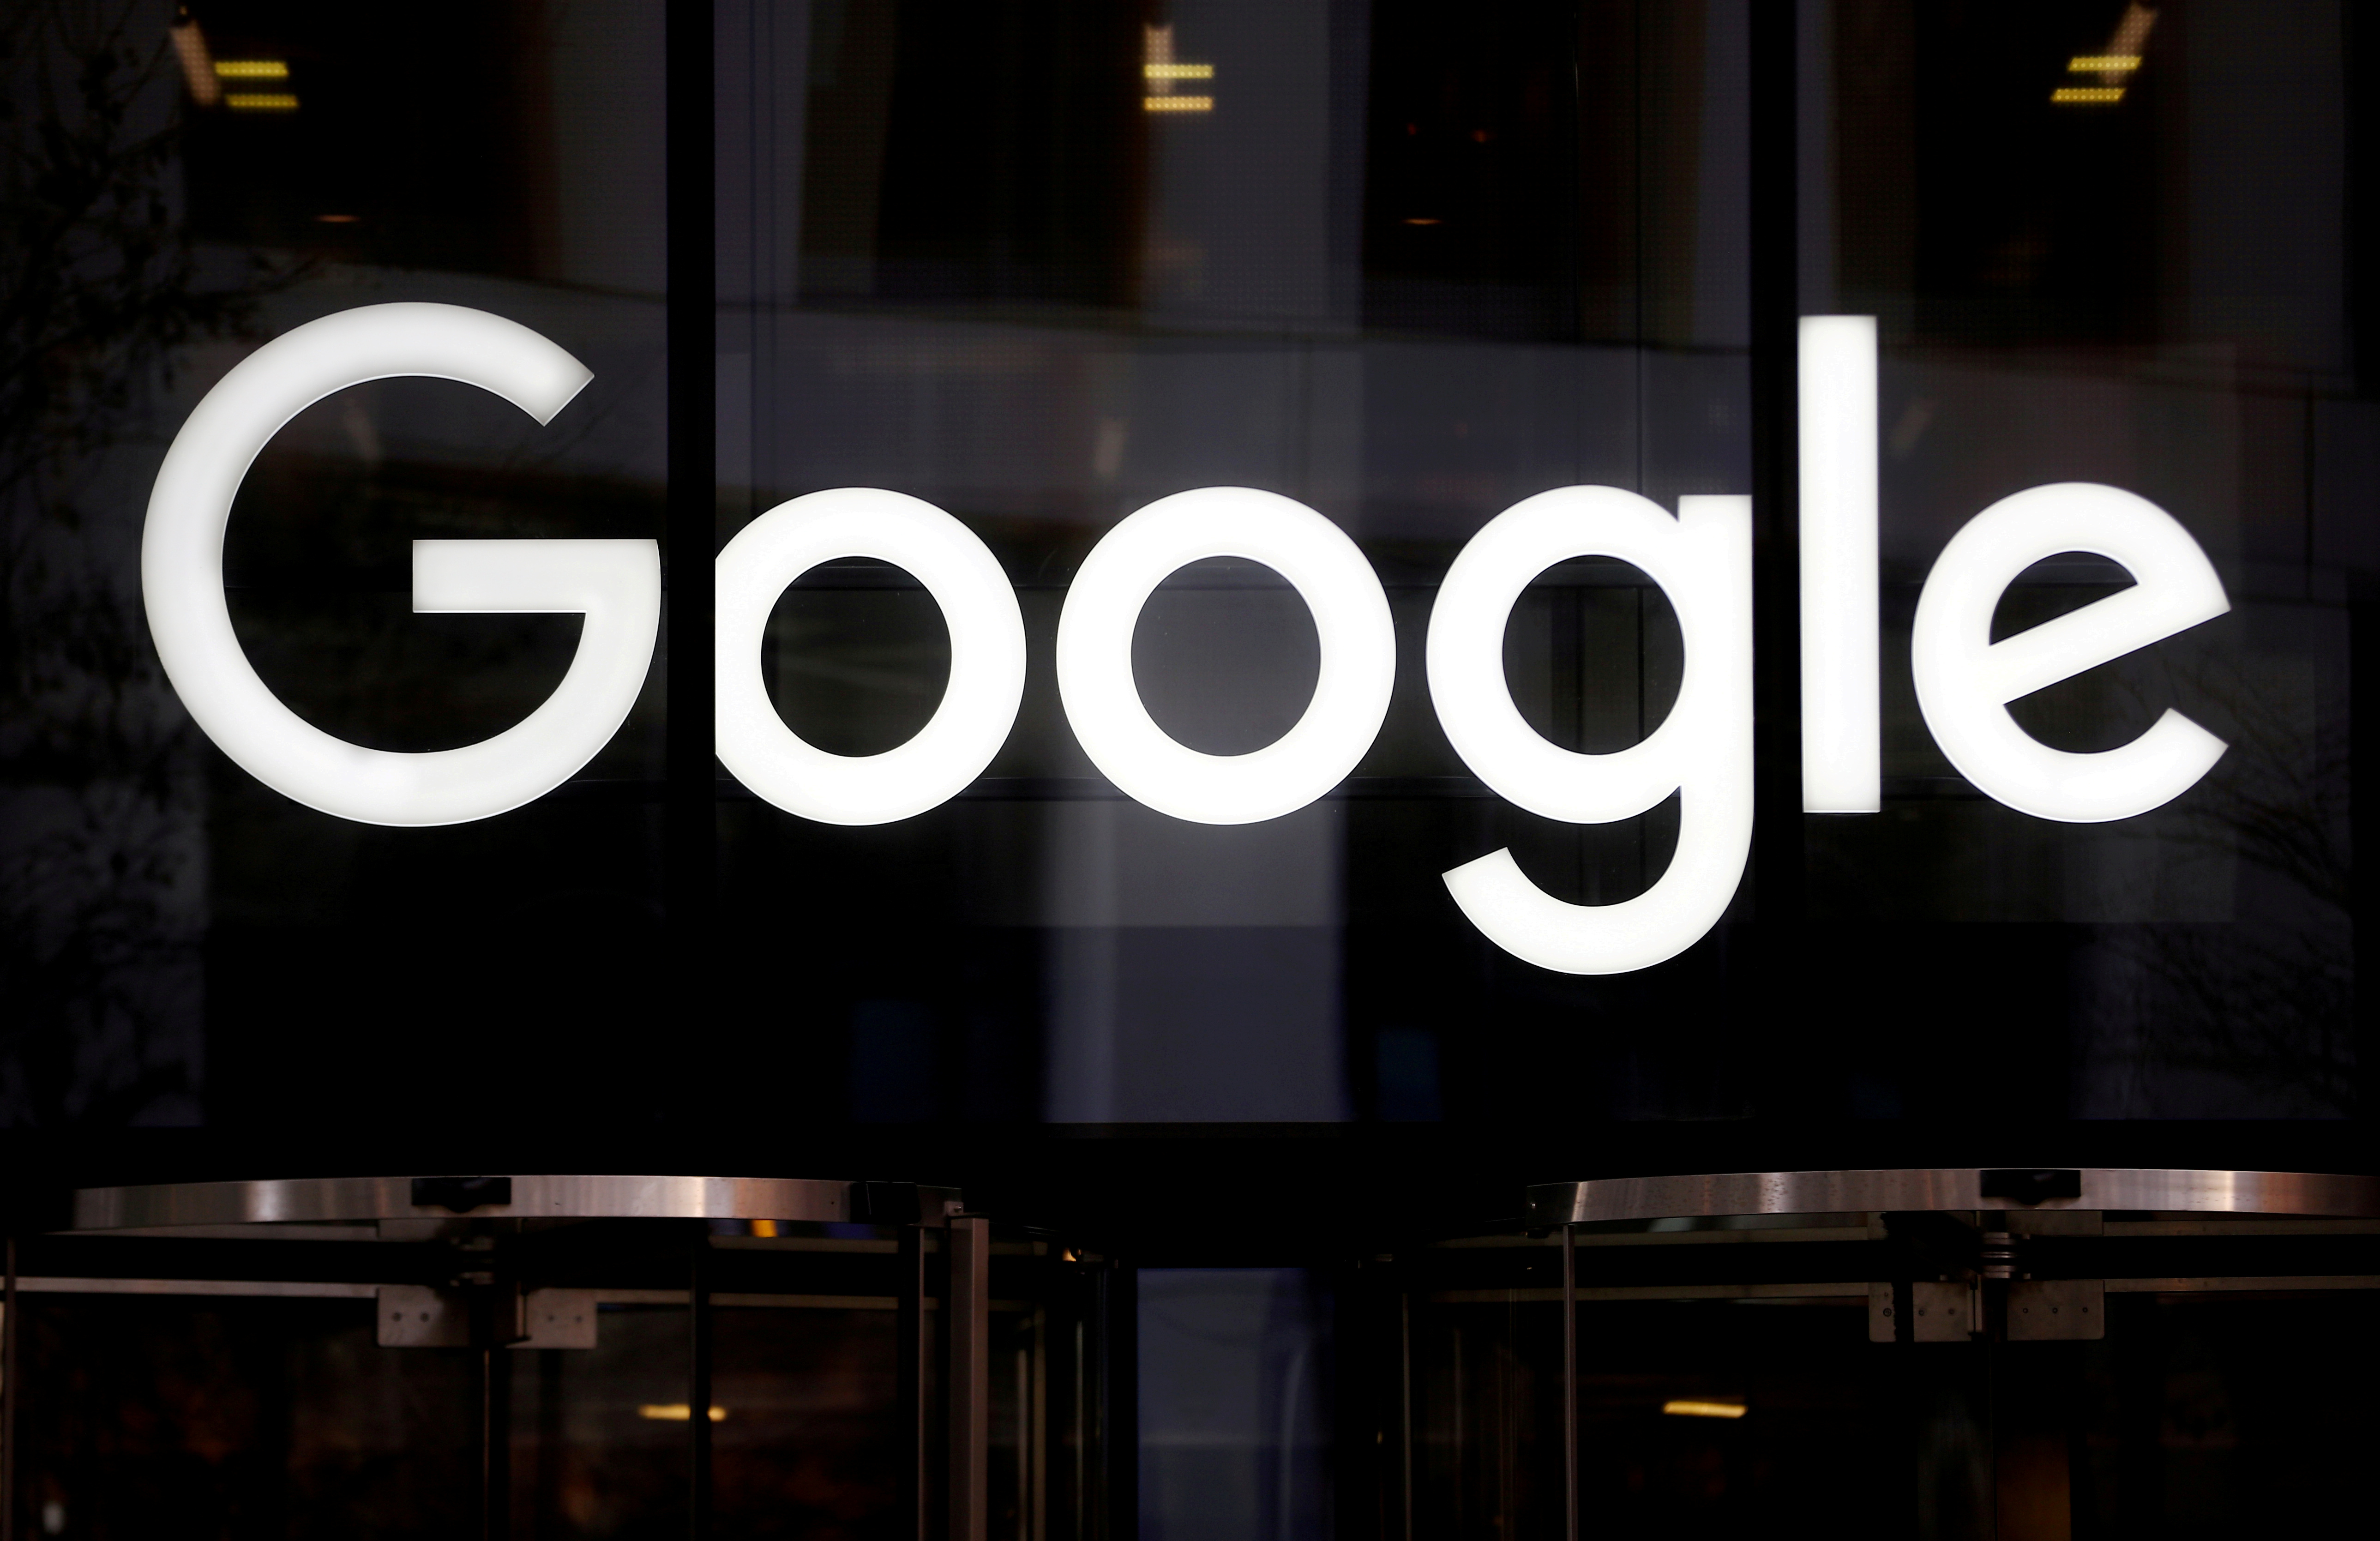 The Google logo is pictured at the entrance to the Google offices in London, Britain January 18, 2019. REUTERS/Hannah McKay